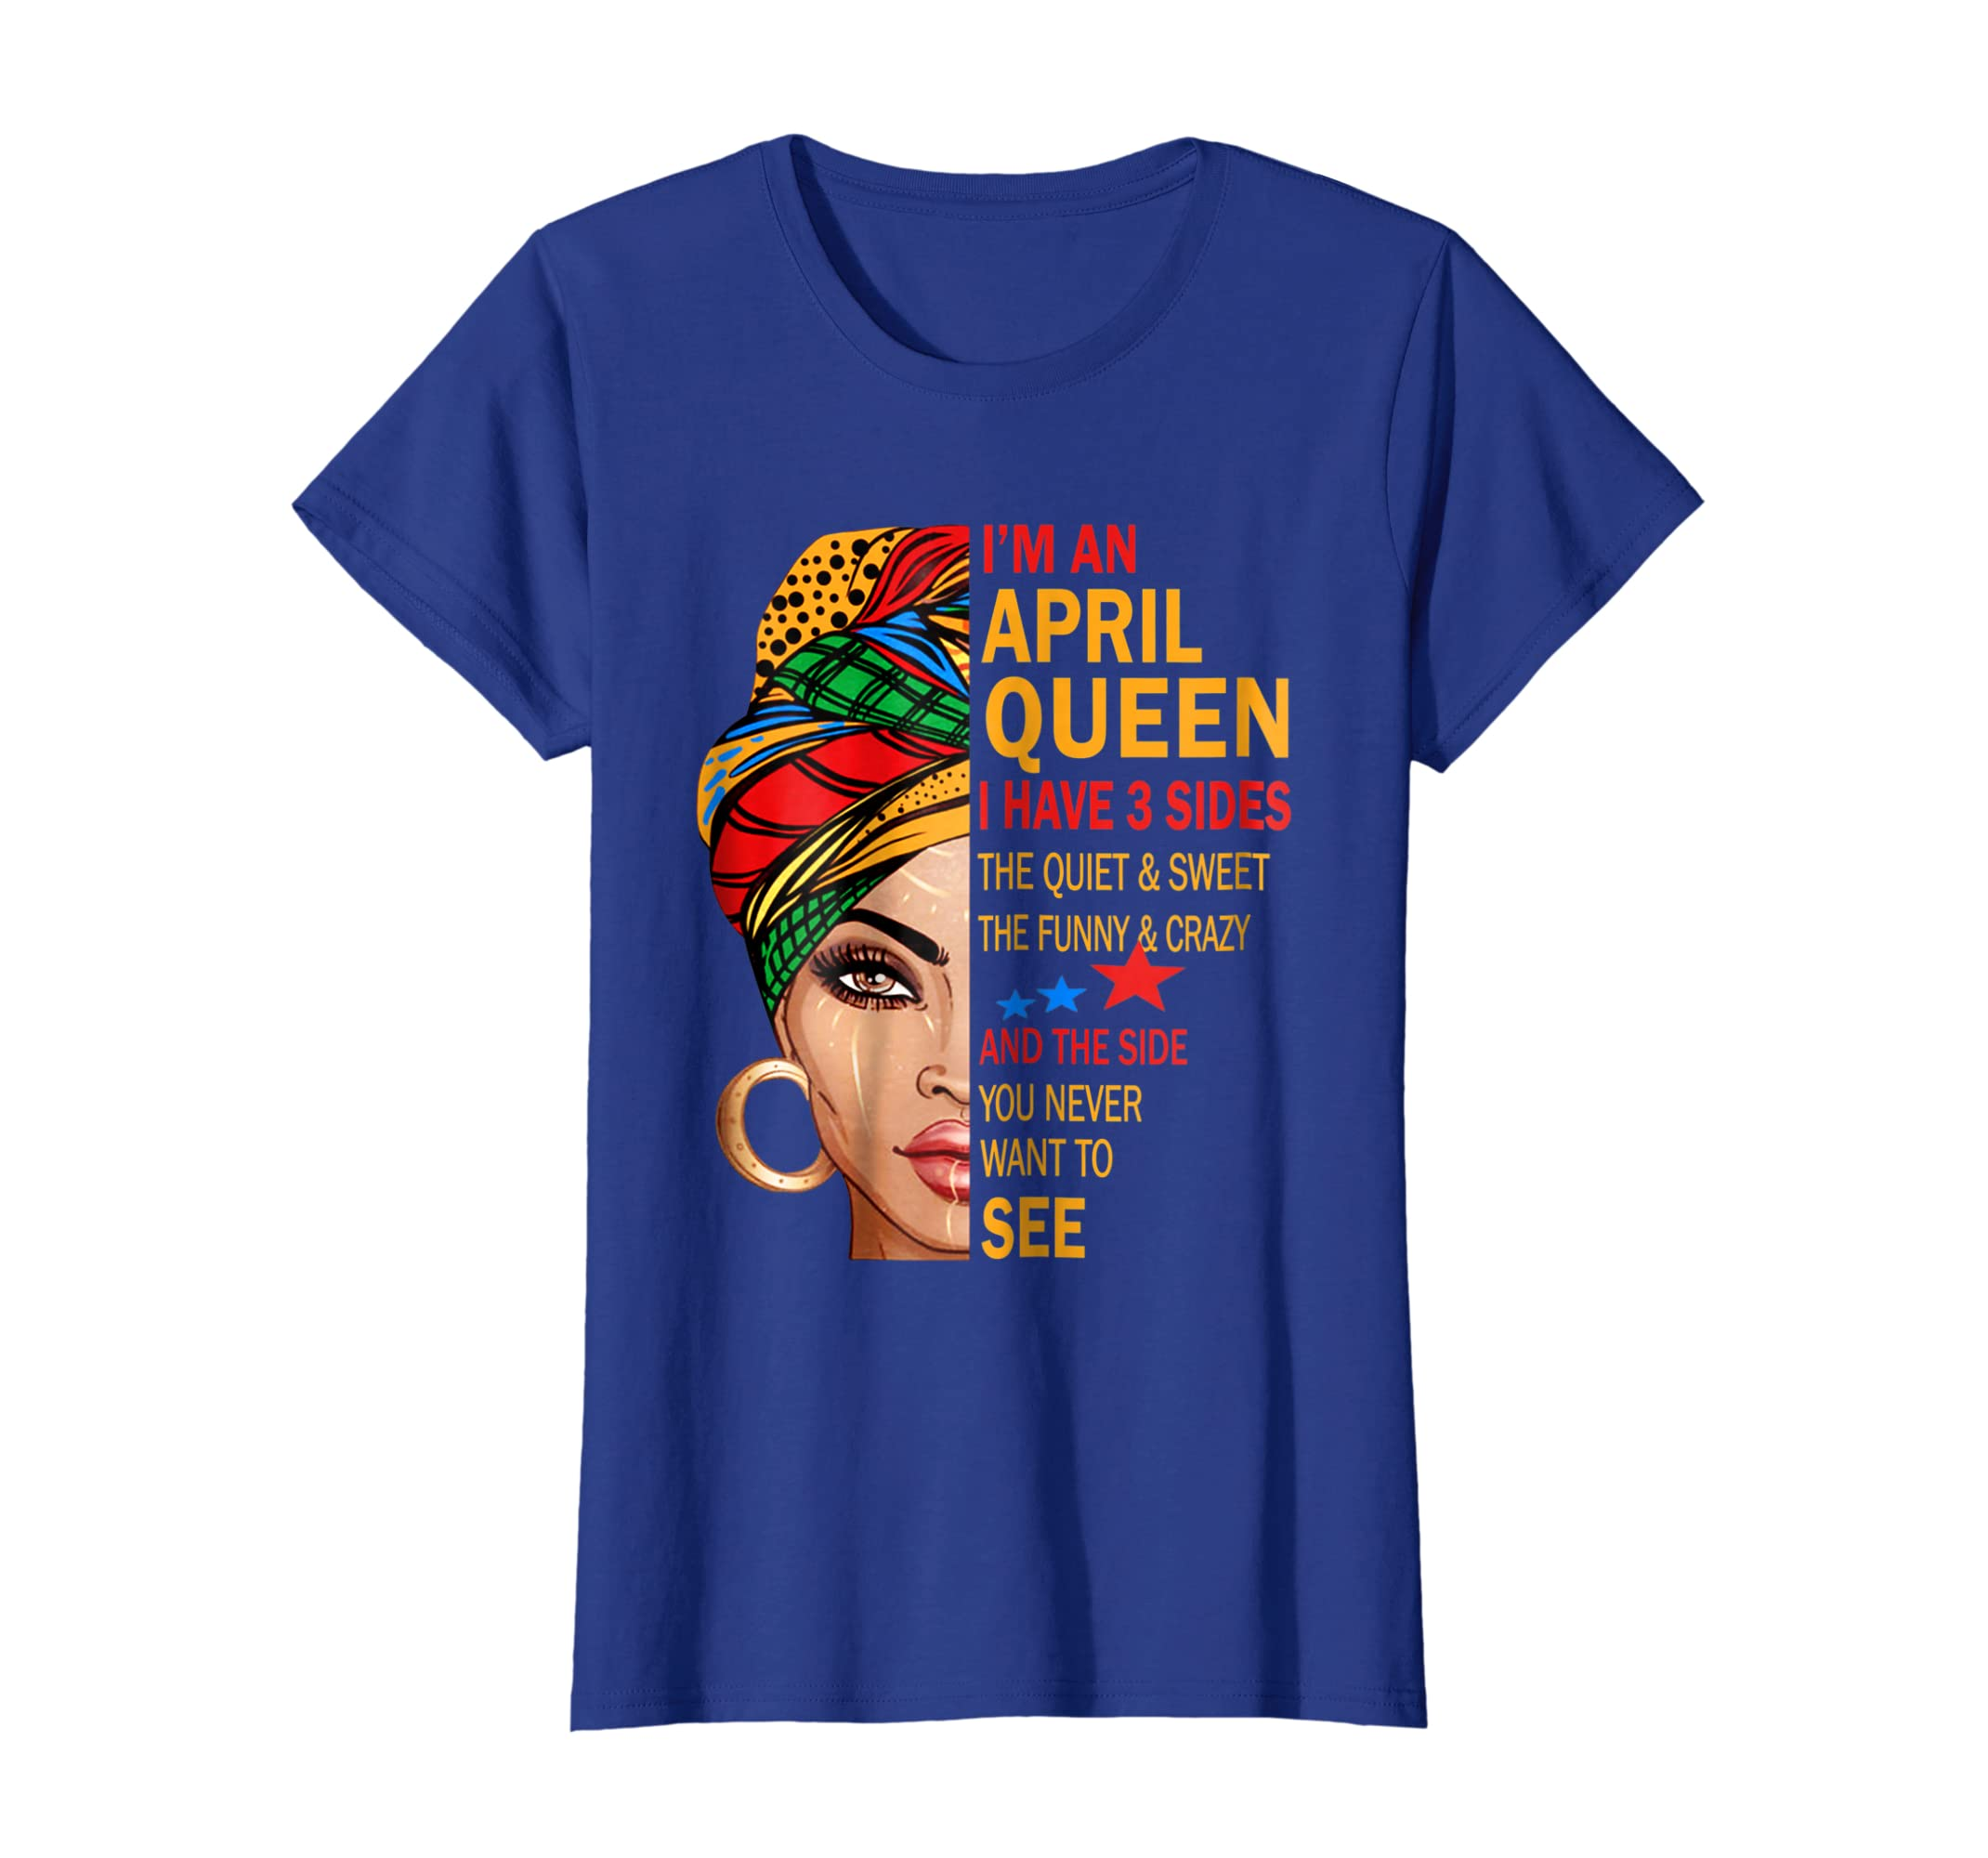 APRIL QUEEN I HAVE 3 SIDES T-SHIRT APRIL SHIRT FOR GIRLS-Yolotee